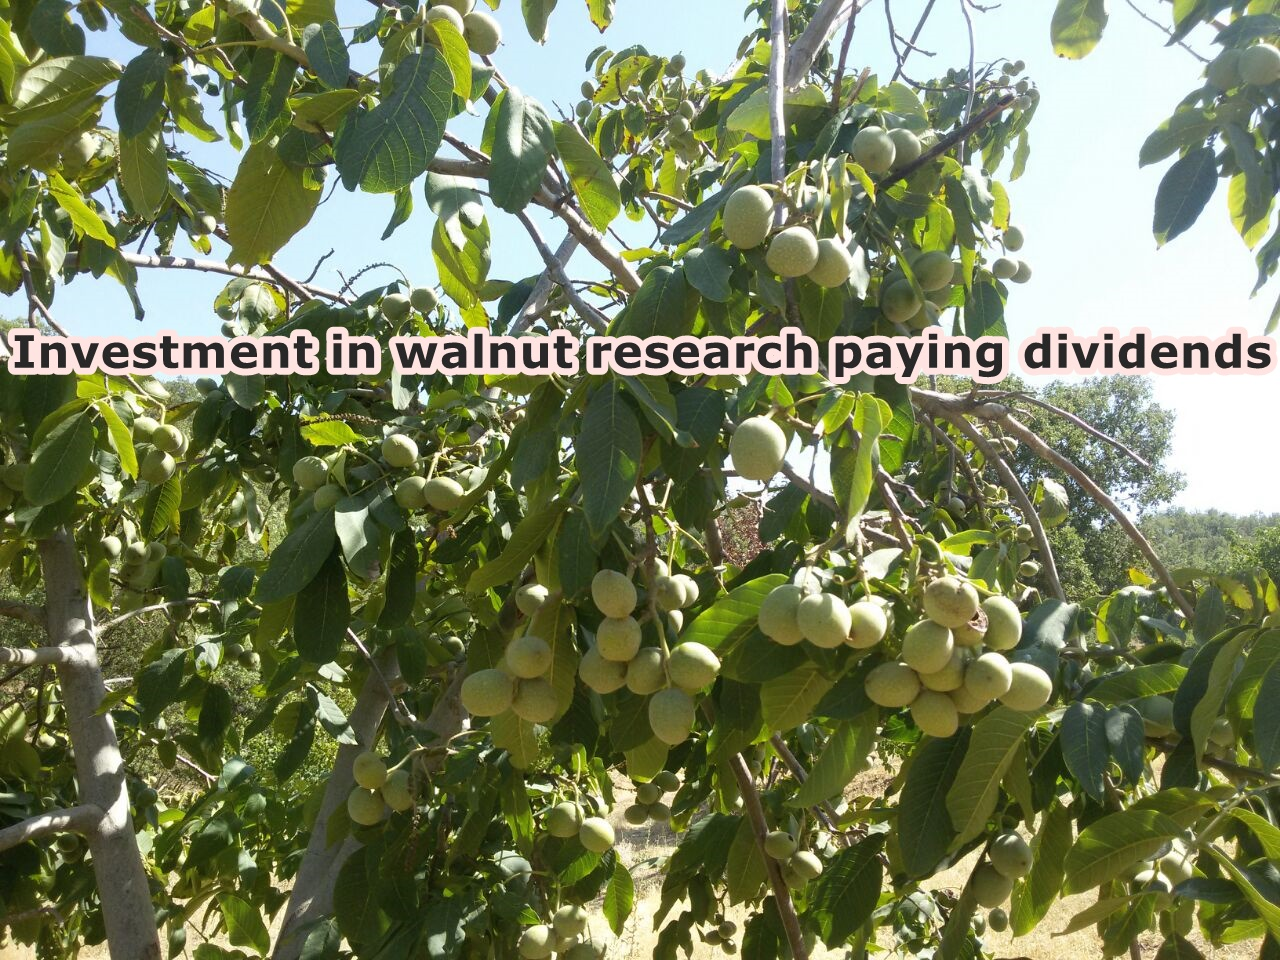 Investment in walnut research paying dividends